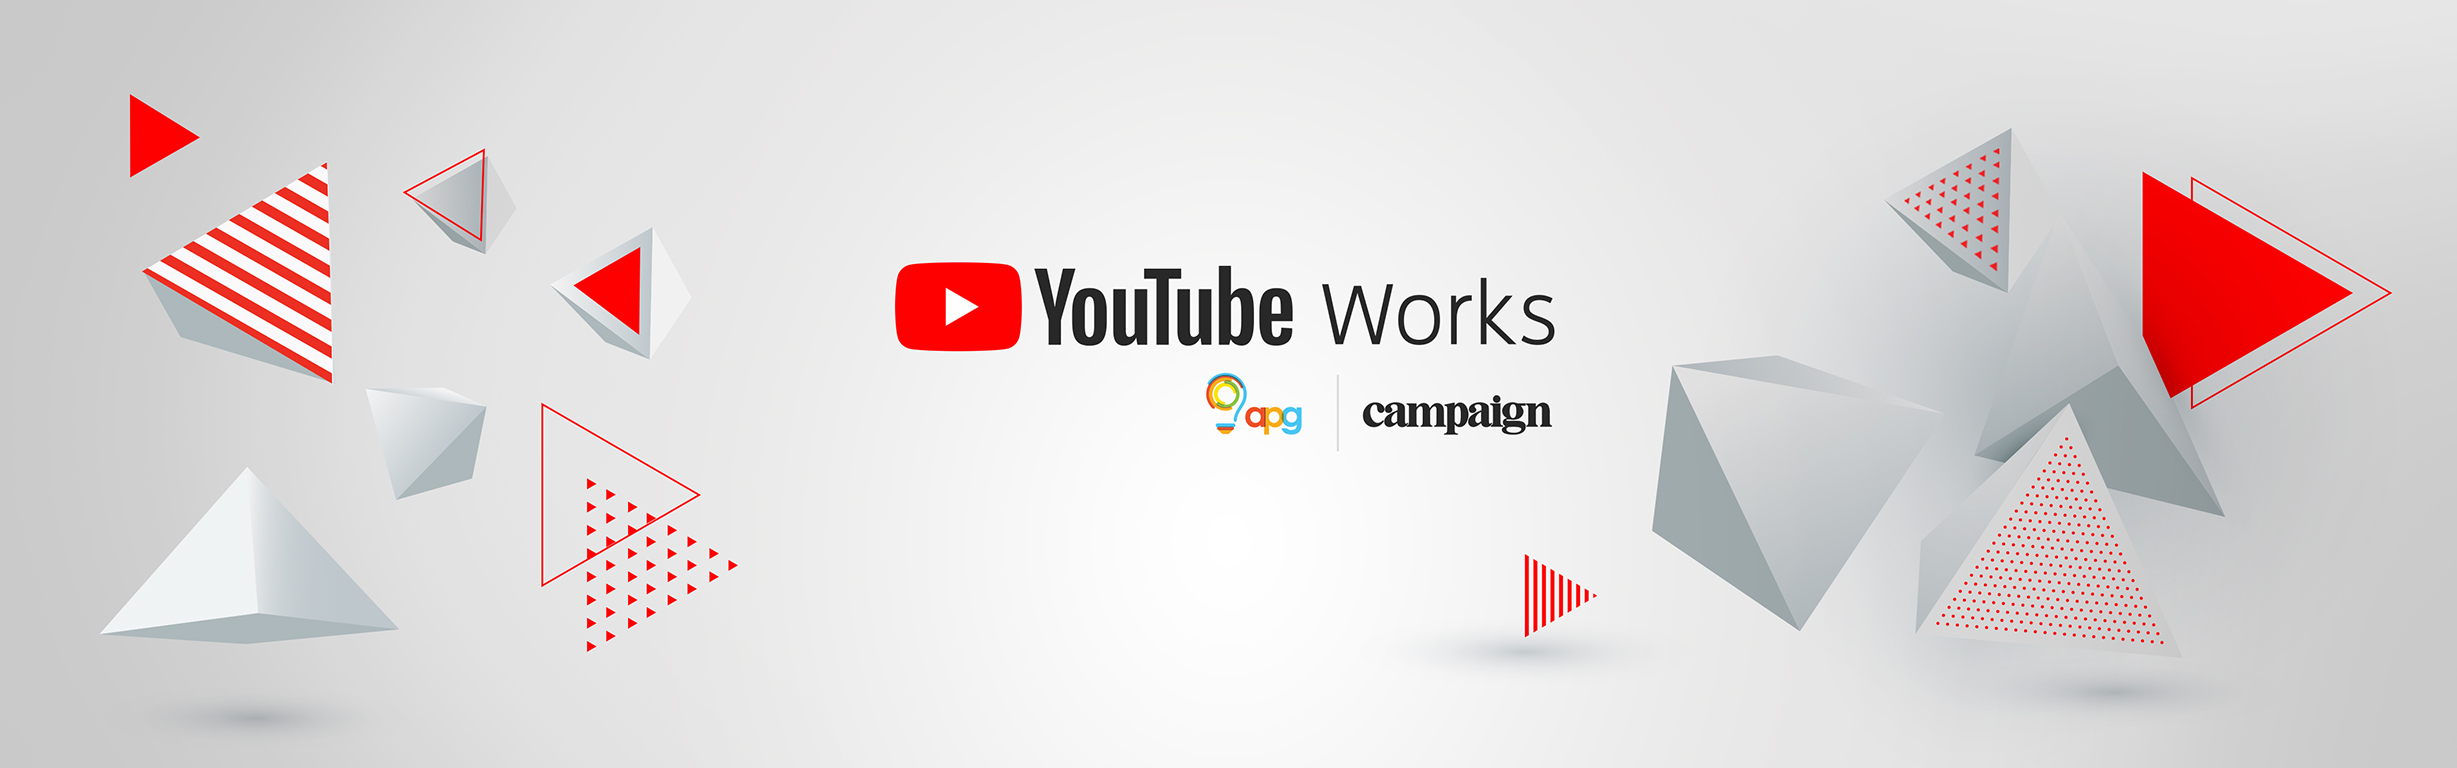 youtube works award campaign winner